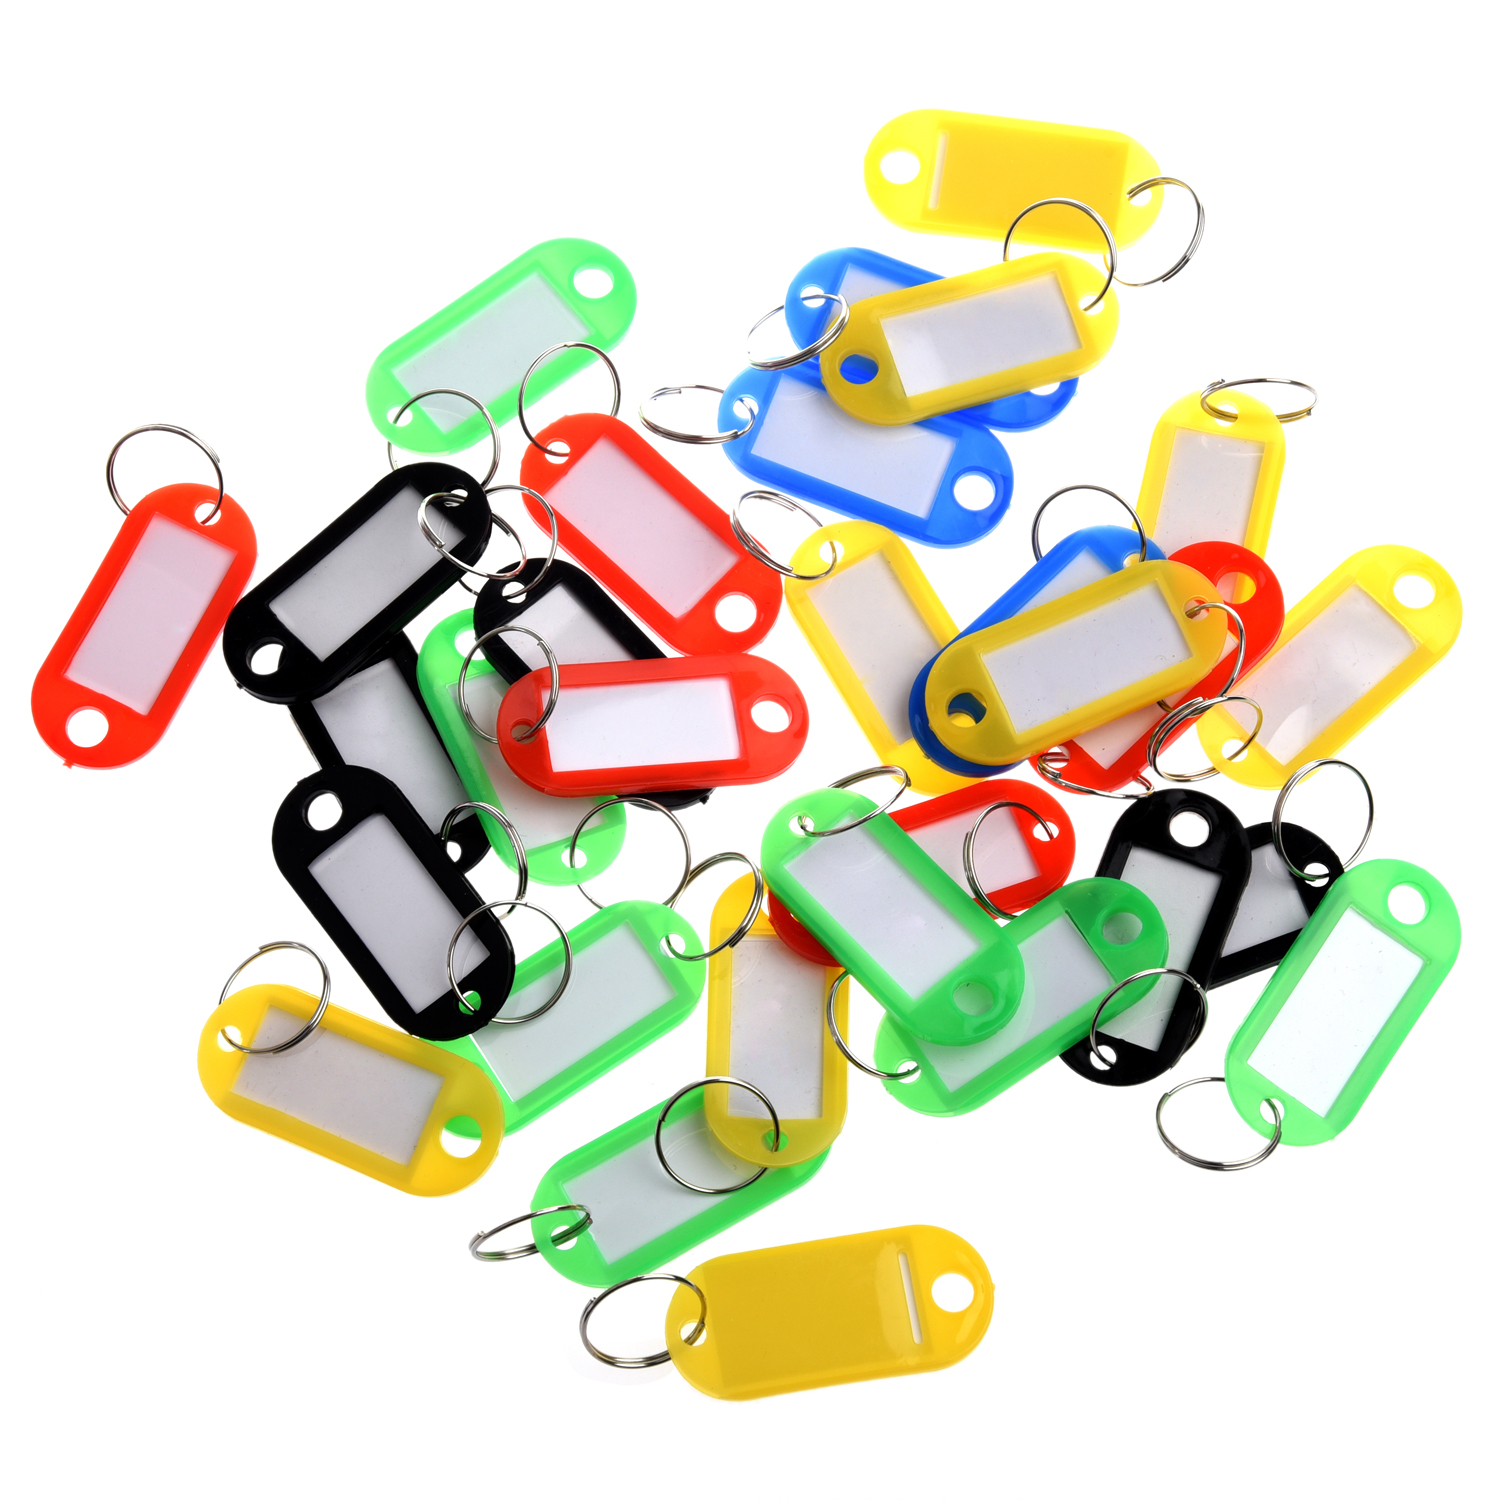 HEBA-30 X Coloured Plastic Key Fobs Luggage ID Tags Labels With Name Cards, Ideal For Many Uses - Bunches Of Keys, L